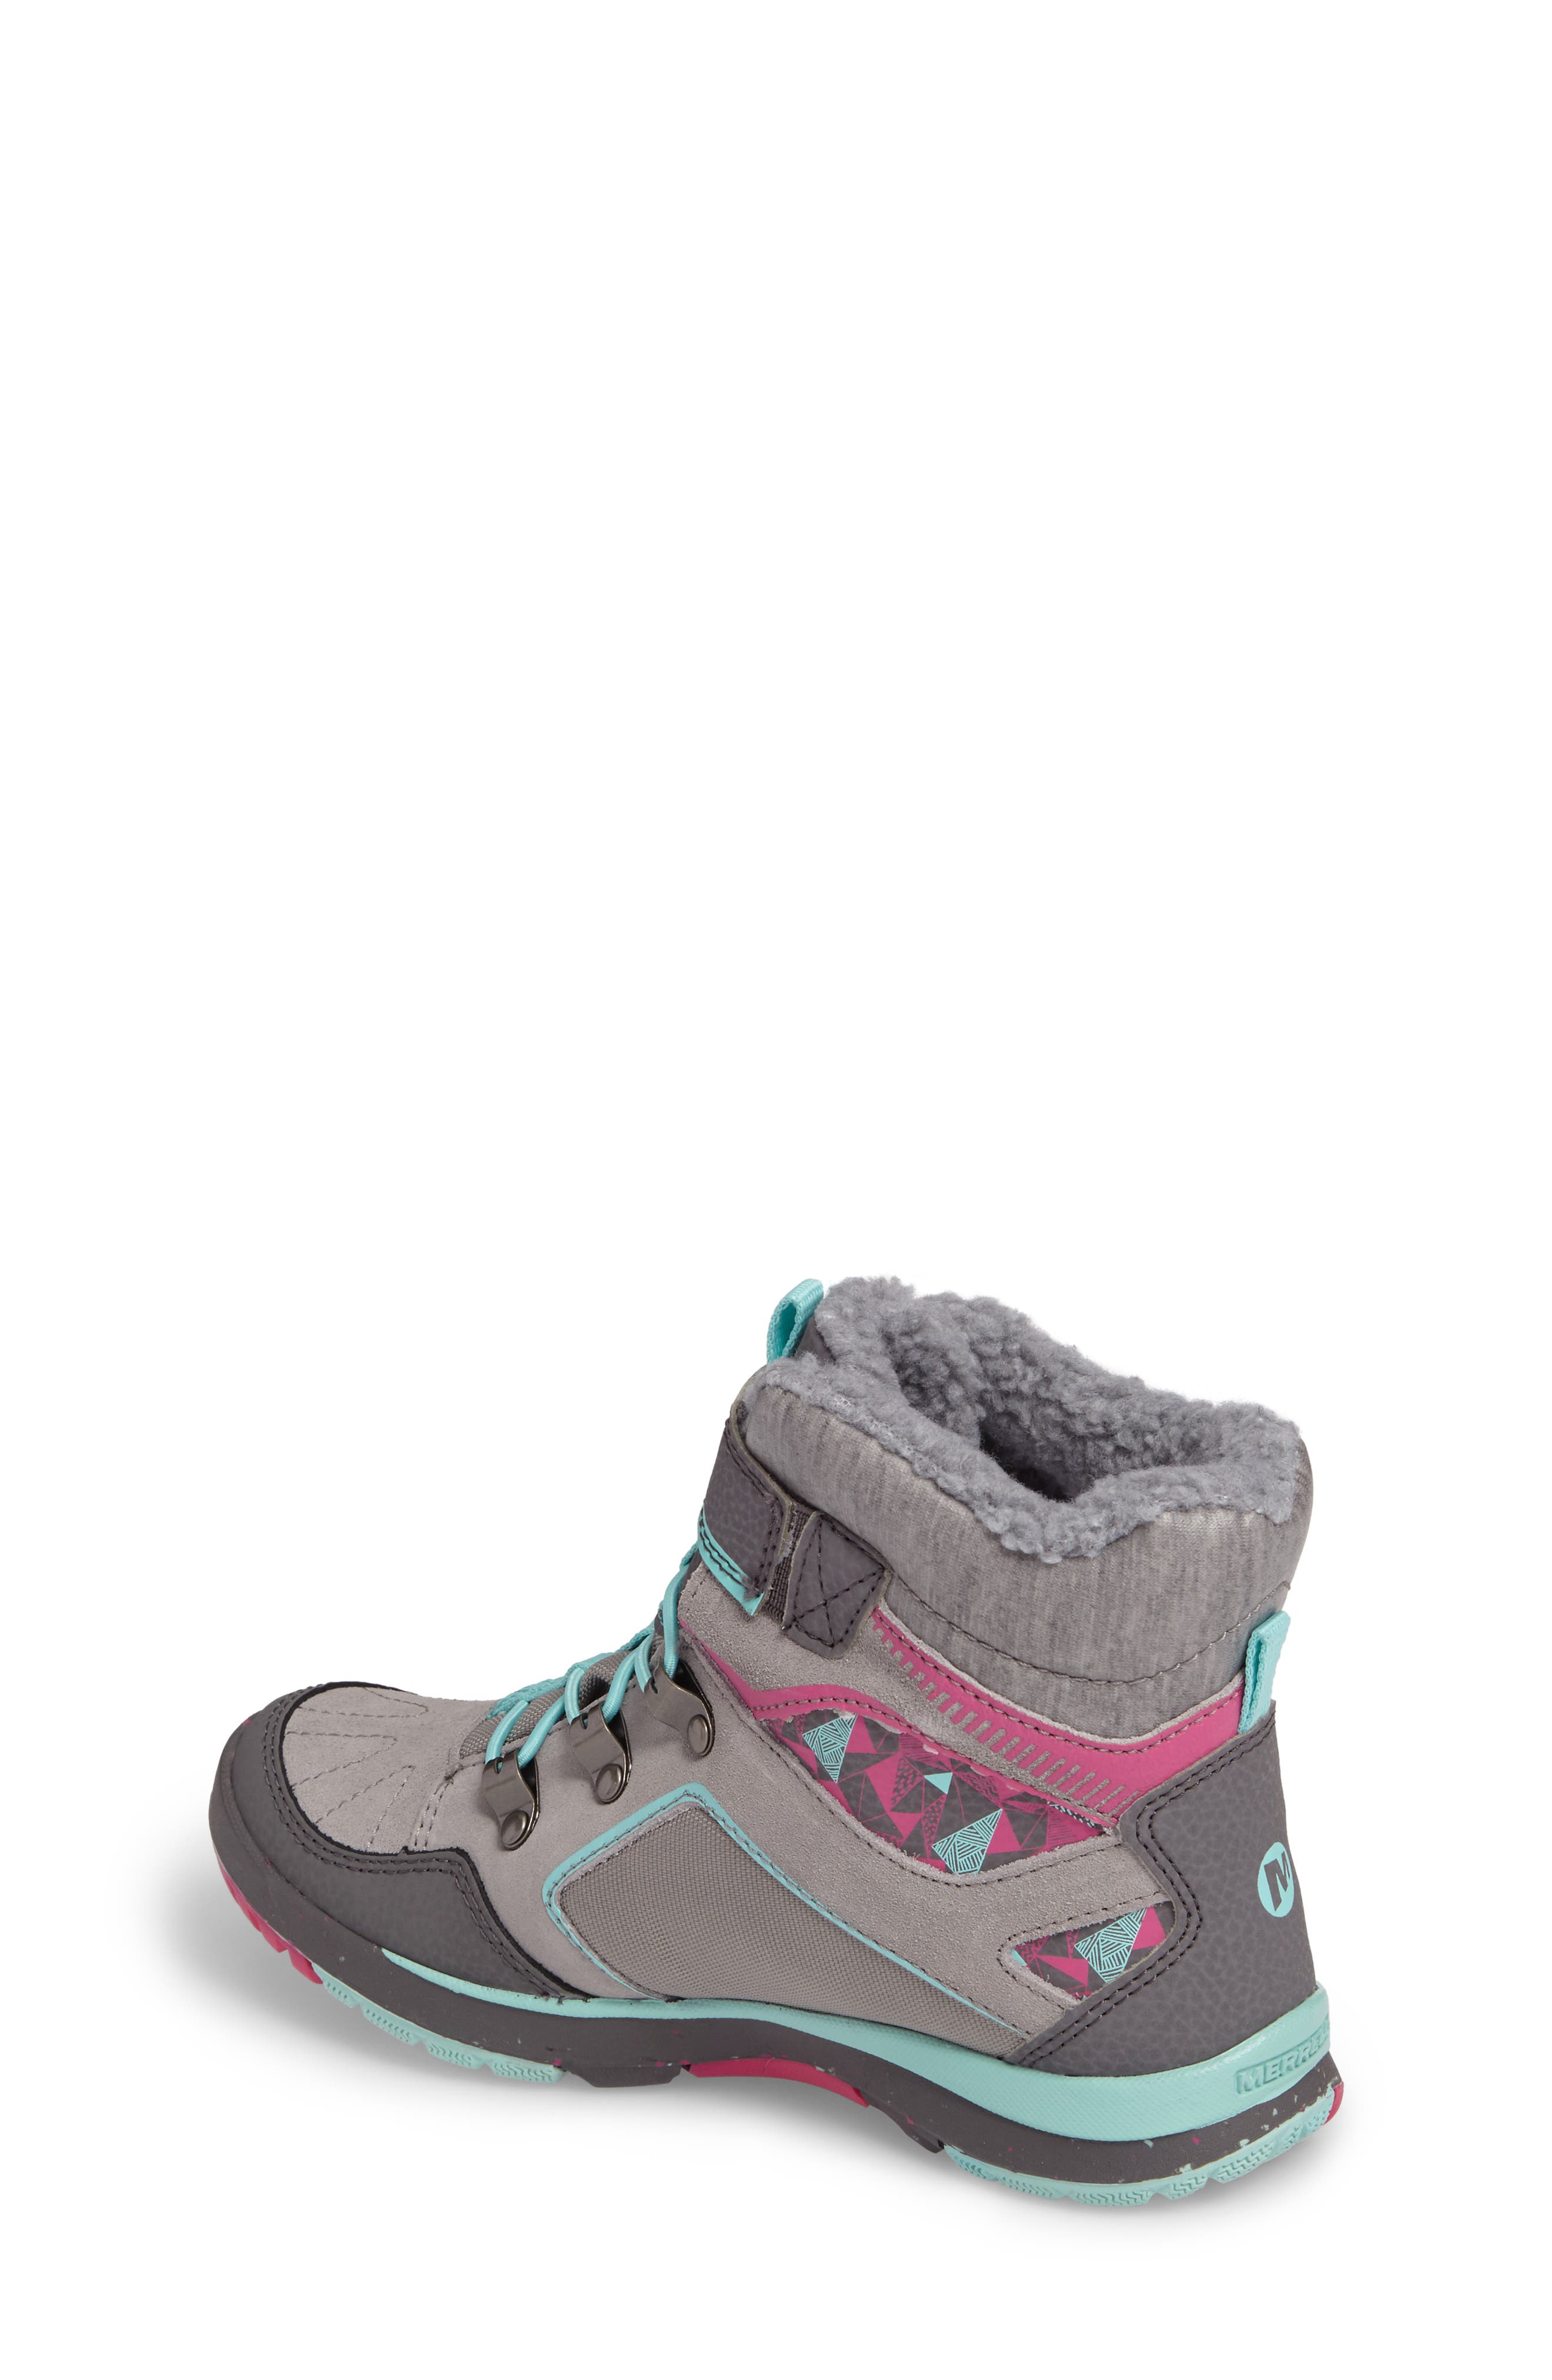 Moab FST Polar Mid Waterproof Insulated Sneaker Boot,                             Alternate thumbnail 2, color,                             Grey/ Multi